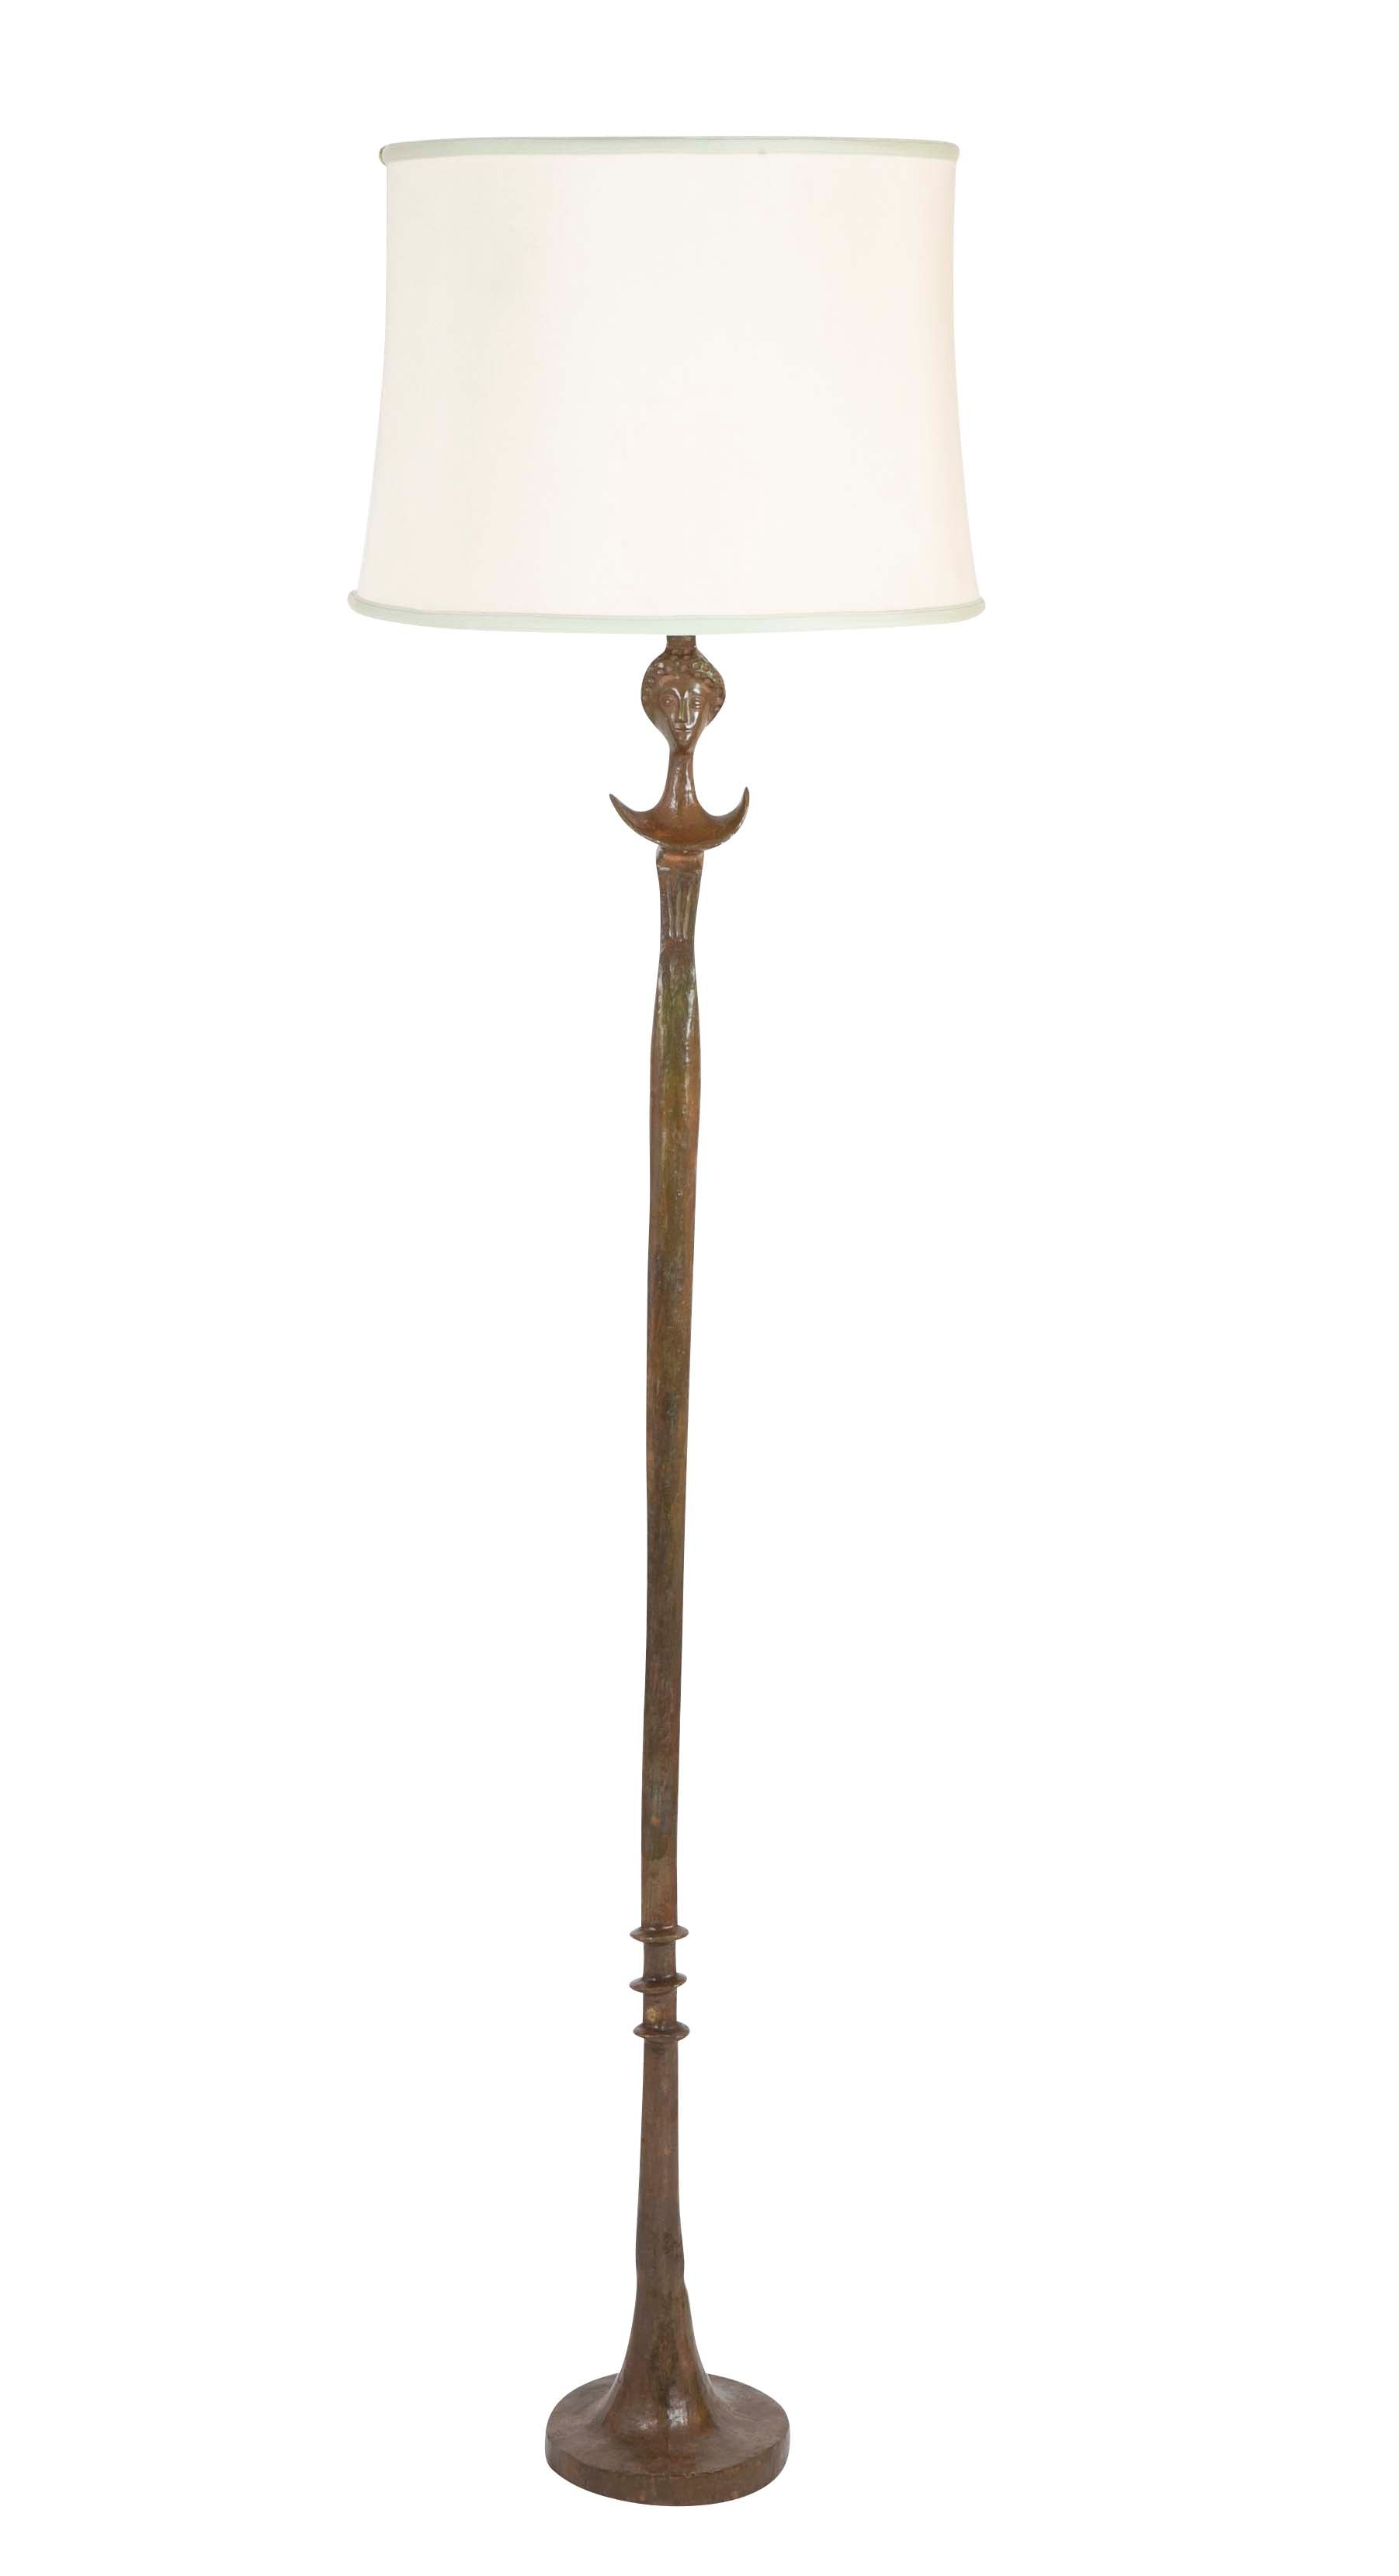 Bronze Floor Lamp in the Style of Giacometti